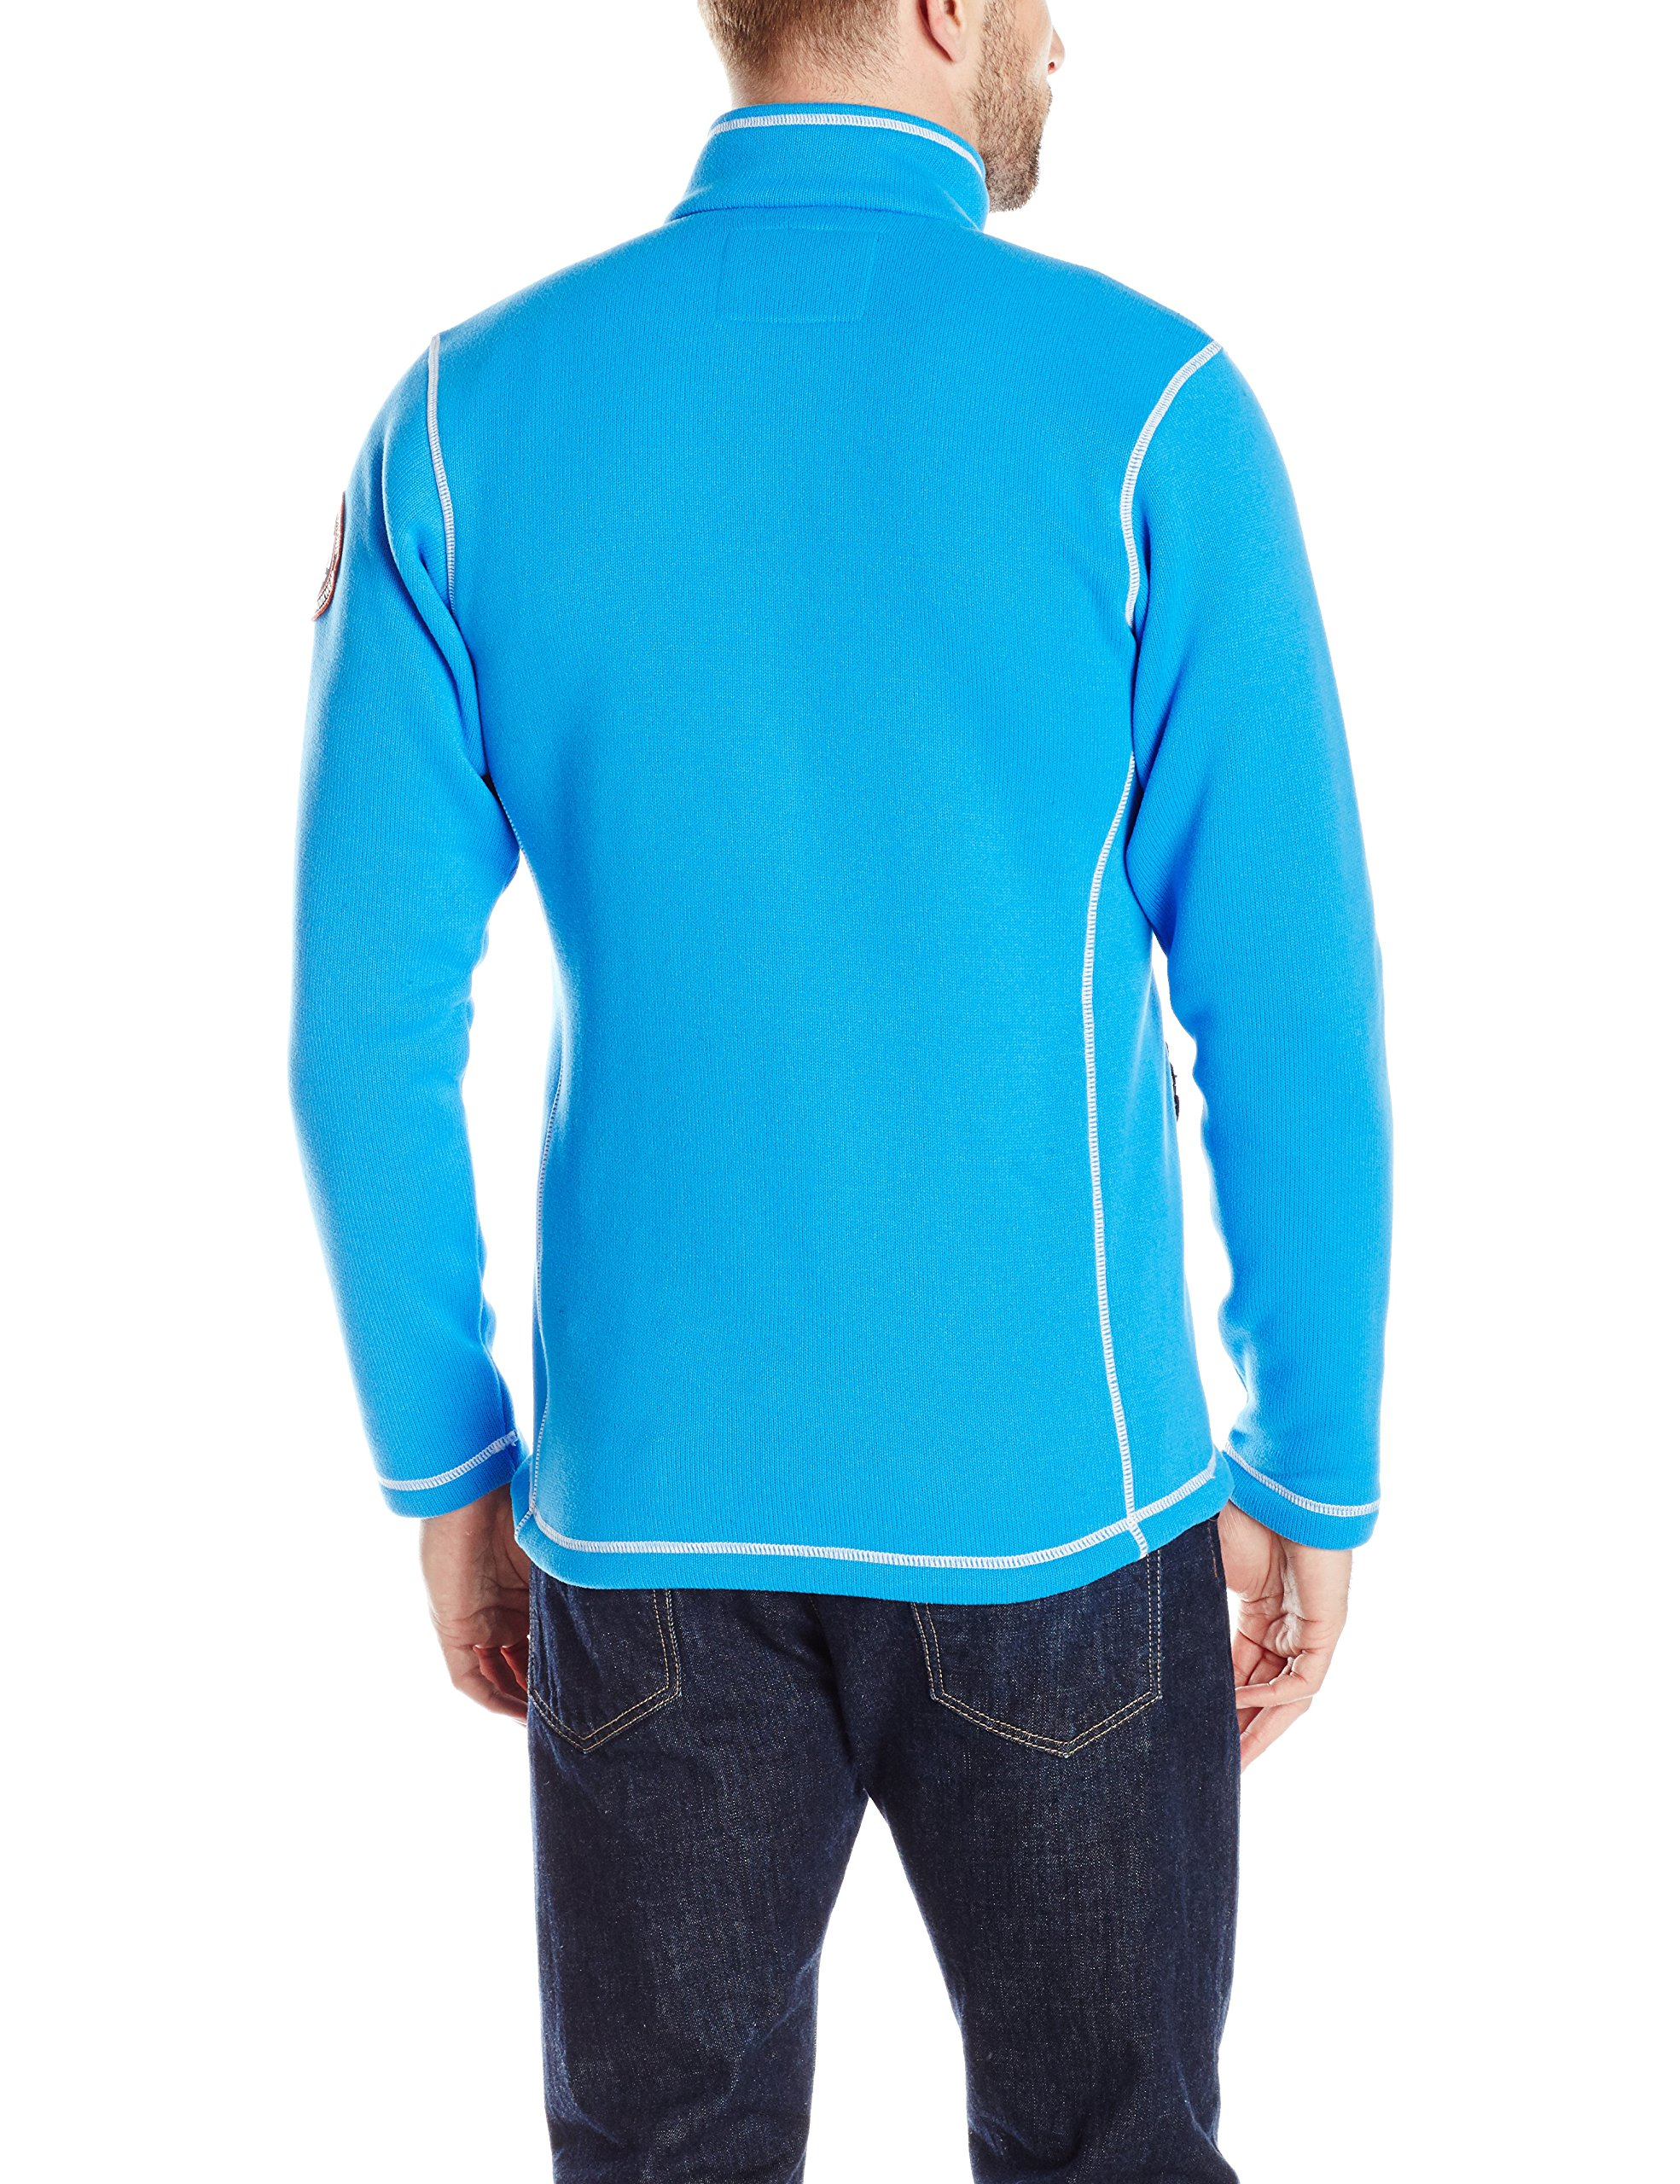 Helly Hansen Work Wear Men's Big and Tall Hay River Polartec Fleece Jacket, Racer Blue, 3X-Large by Helly Hansen (Image #2)